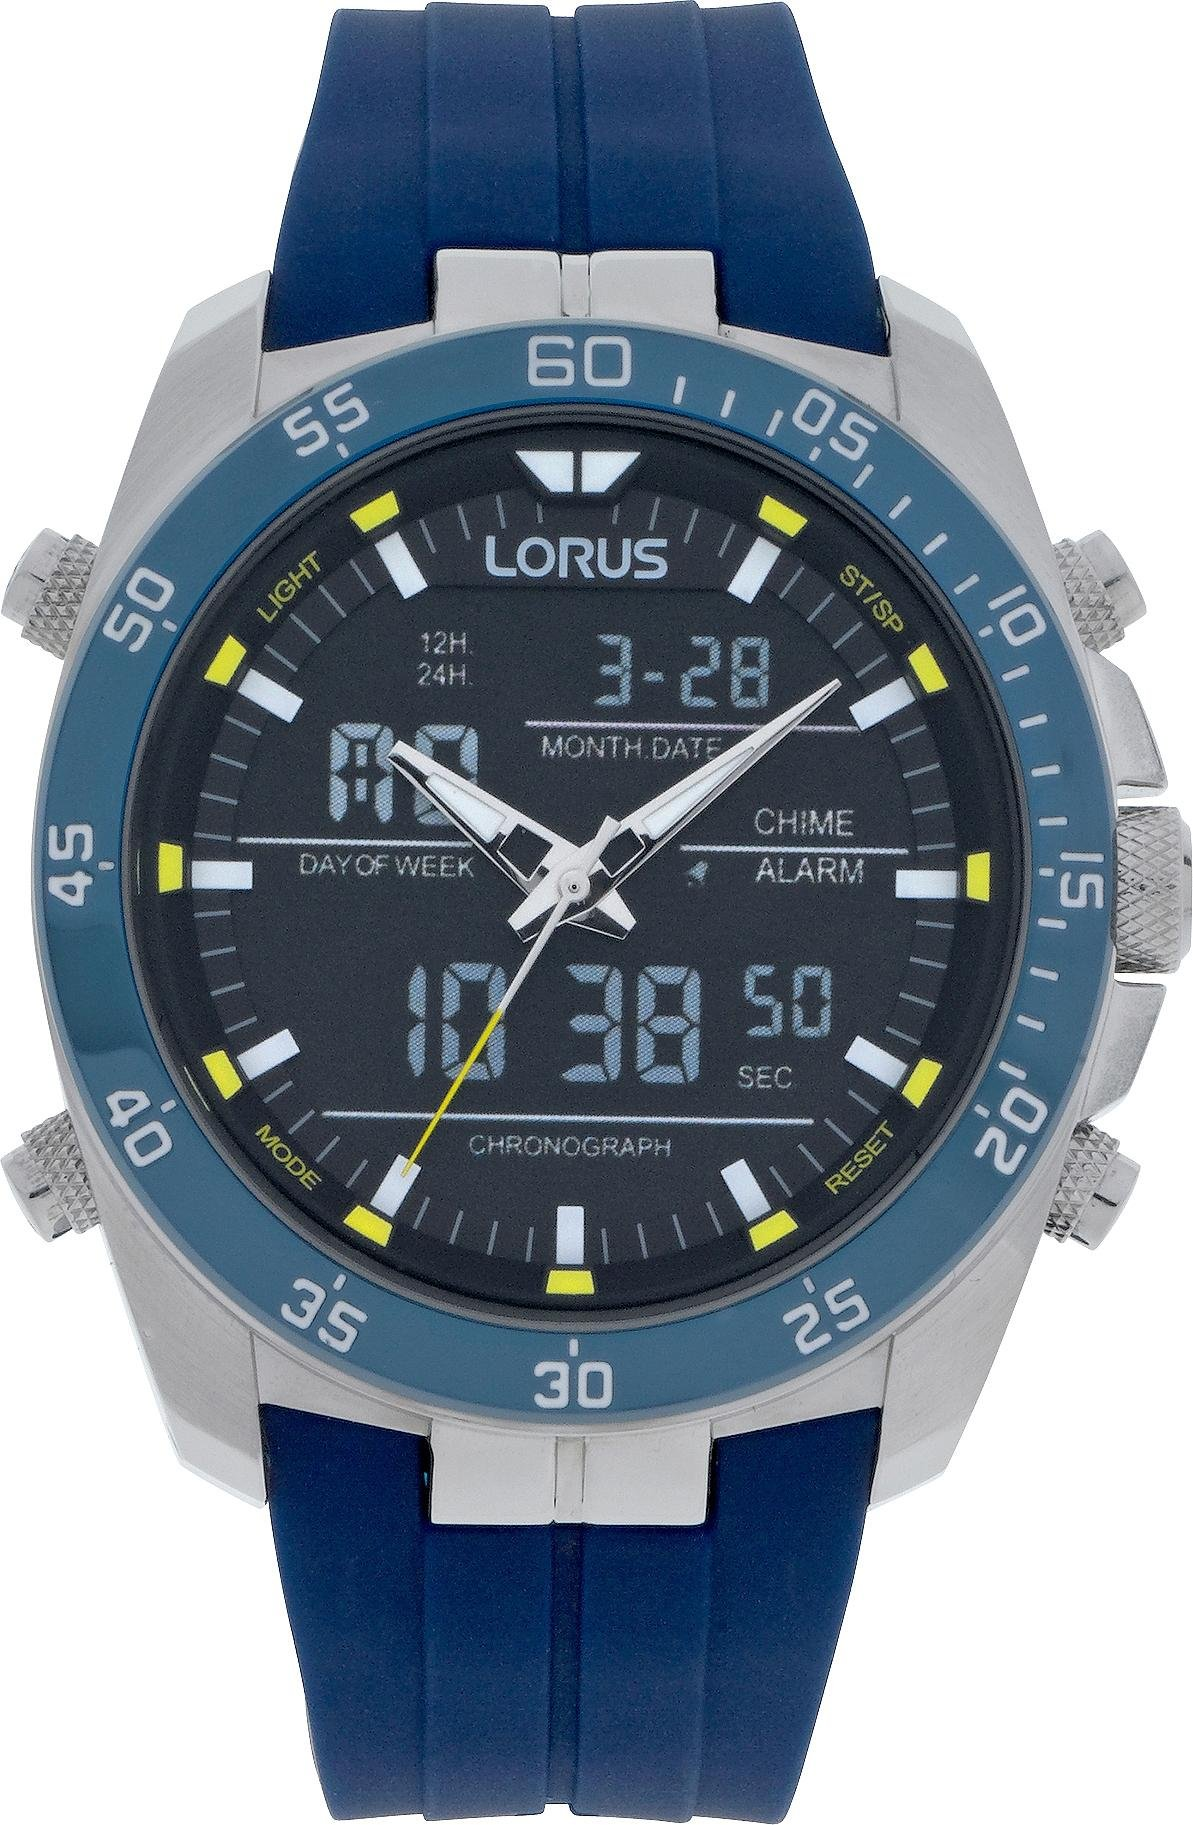 Lorus - Mens Blue Strap Sports - Watch from Lorus